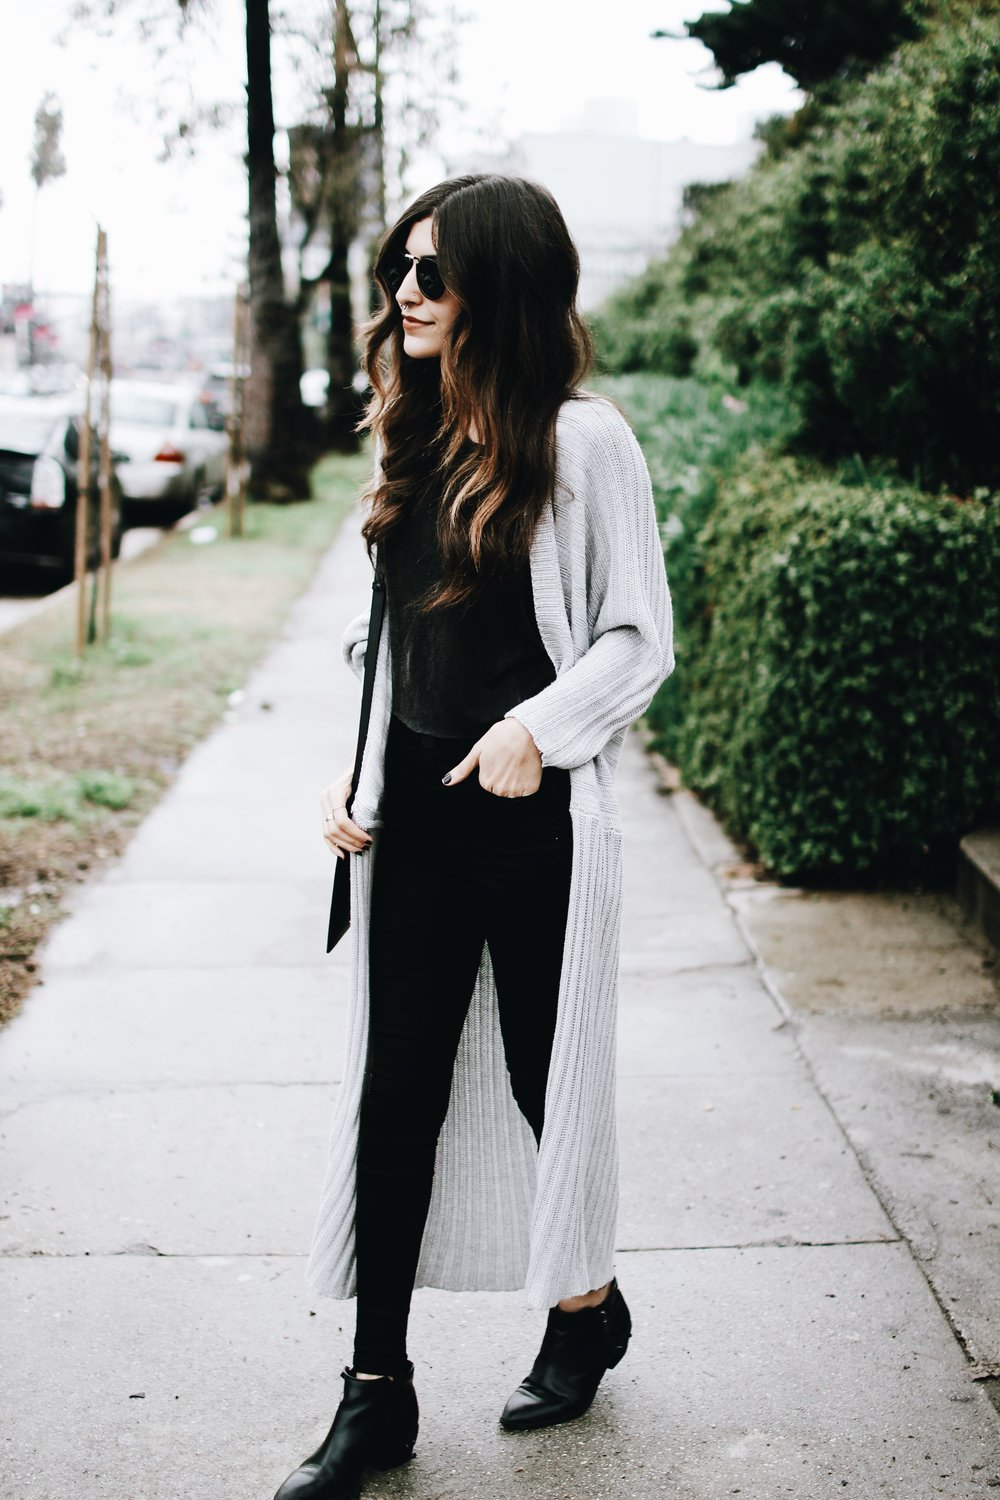 Layered Neutrals For Grey Days // Mel Denisse